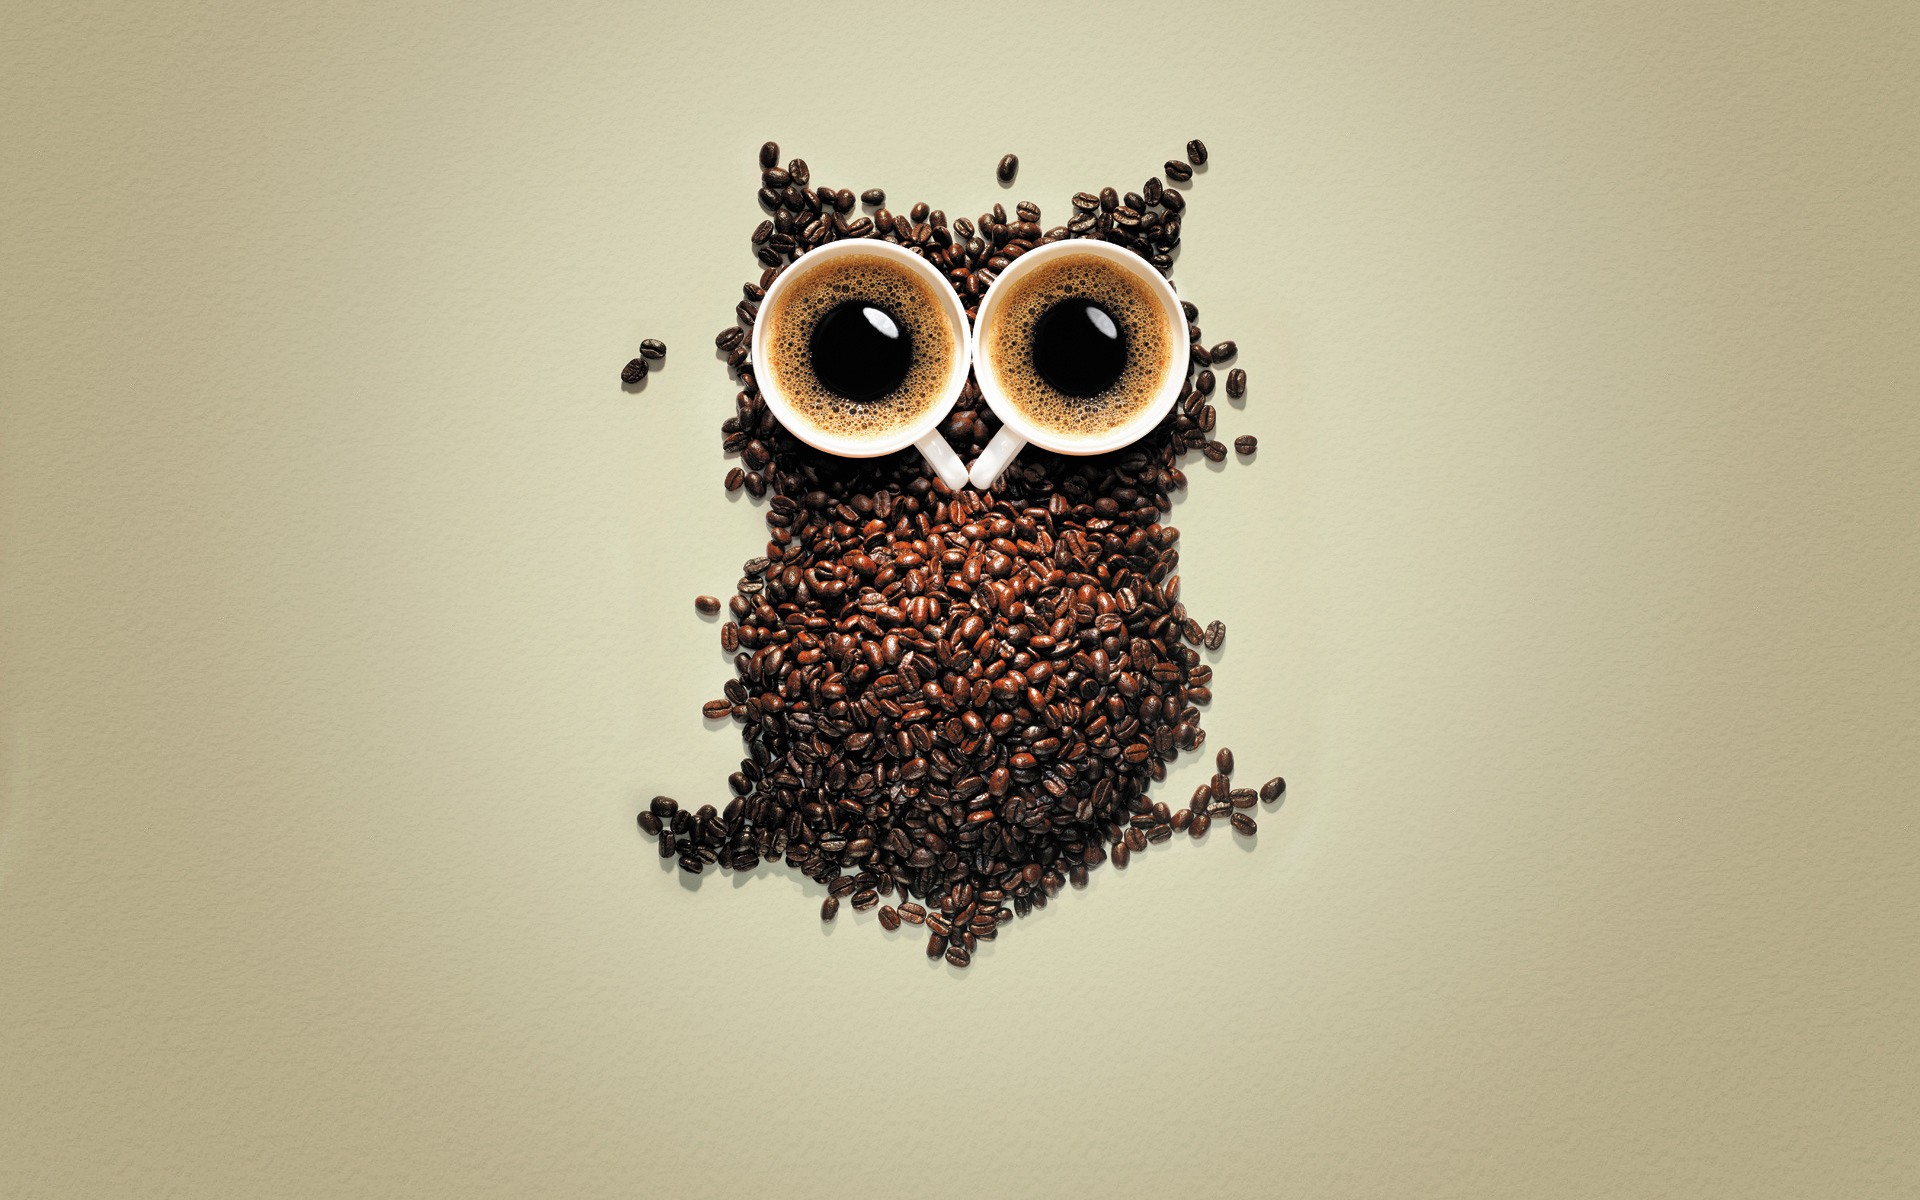 Made From Coffee Cup And Coffee Beans Hd Wallpaper Wallpaper List 1920x1200